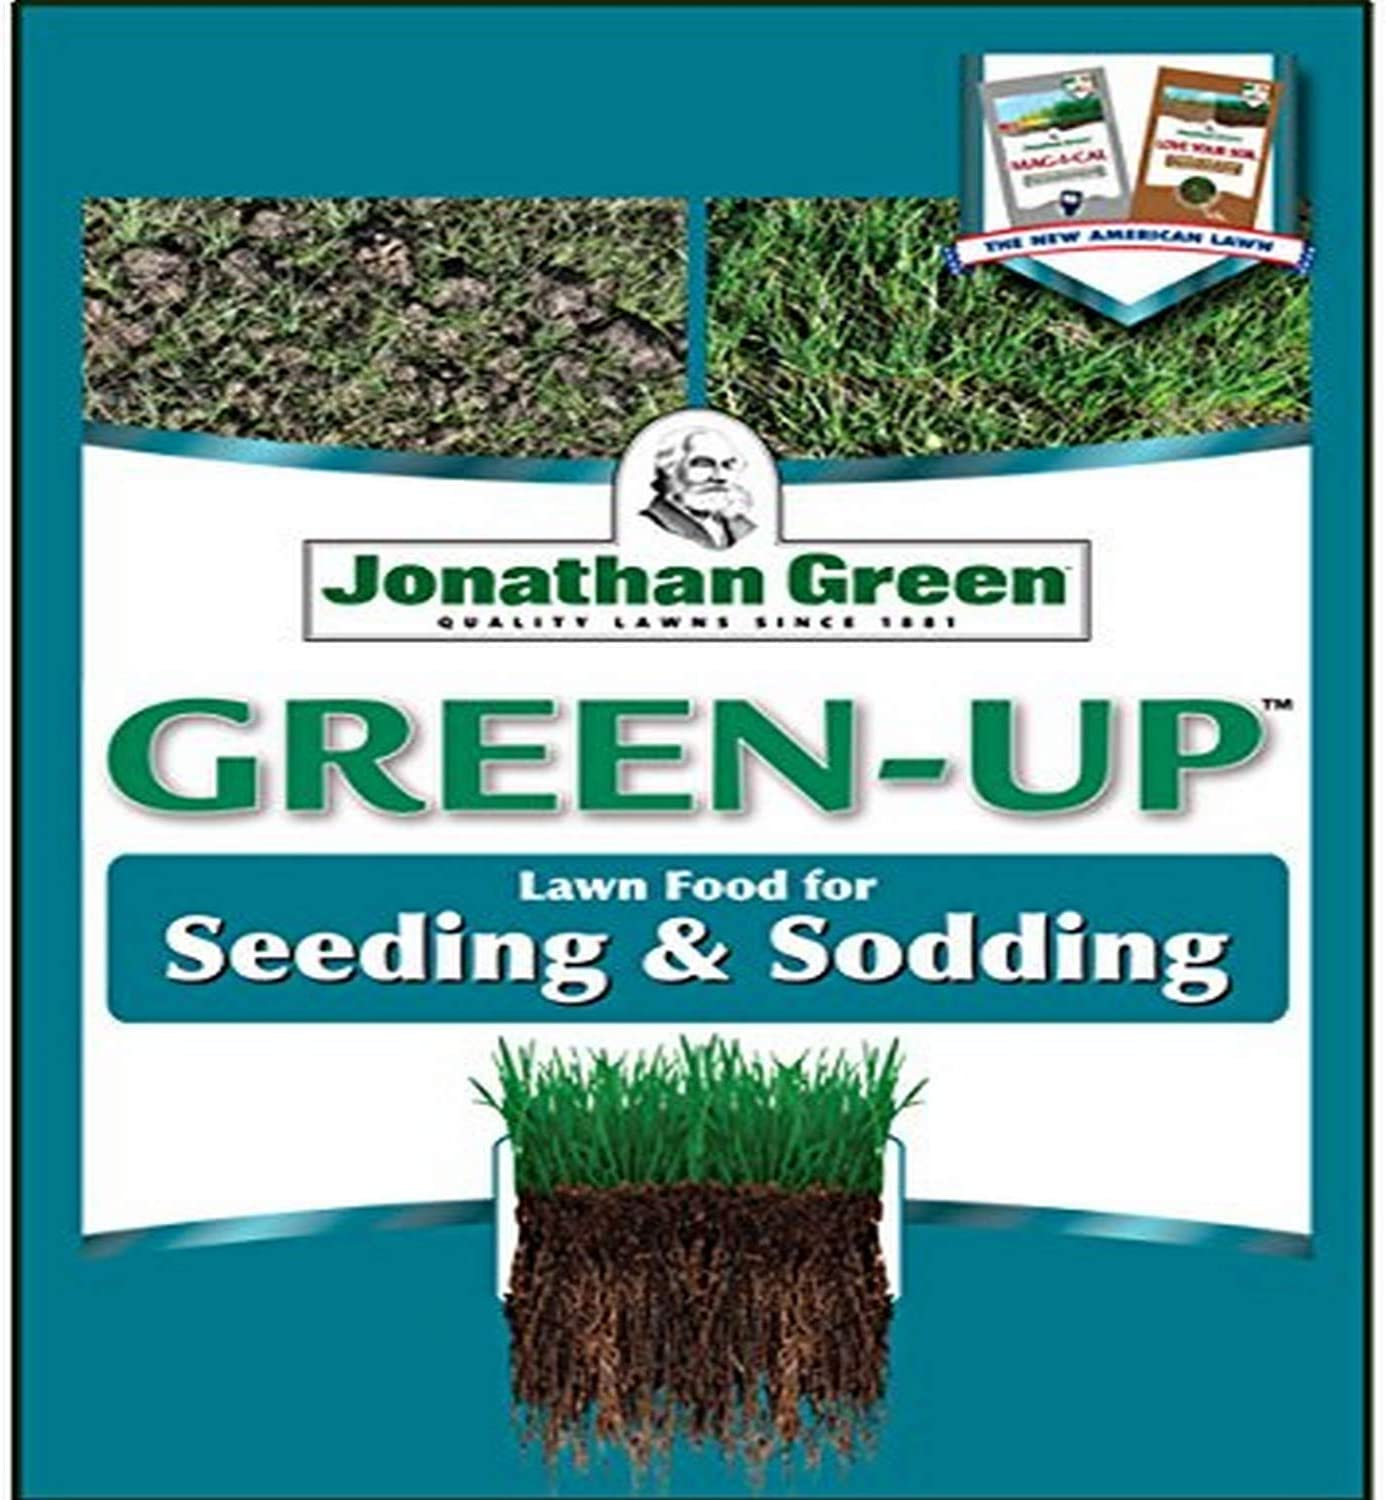 Jonathan Green Sons 11543 Sodding 12-18-8 Seeding OFFicial shop Up Some reservation